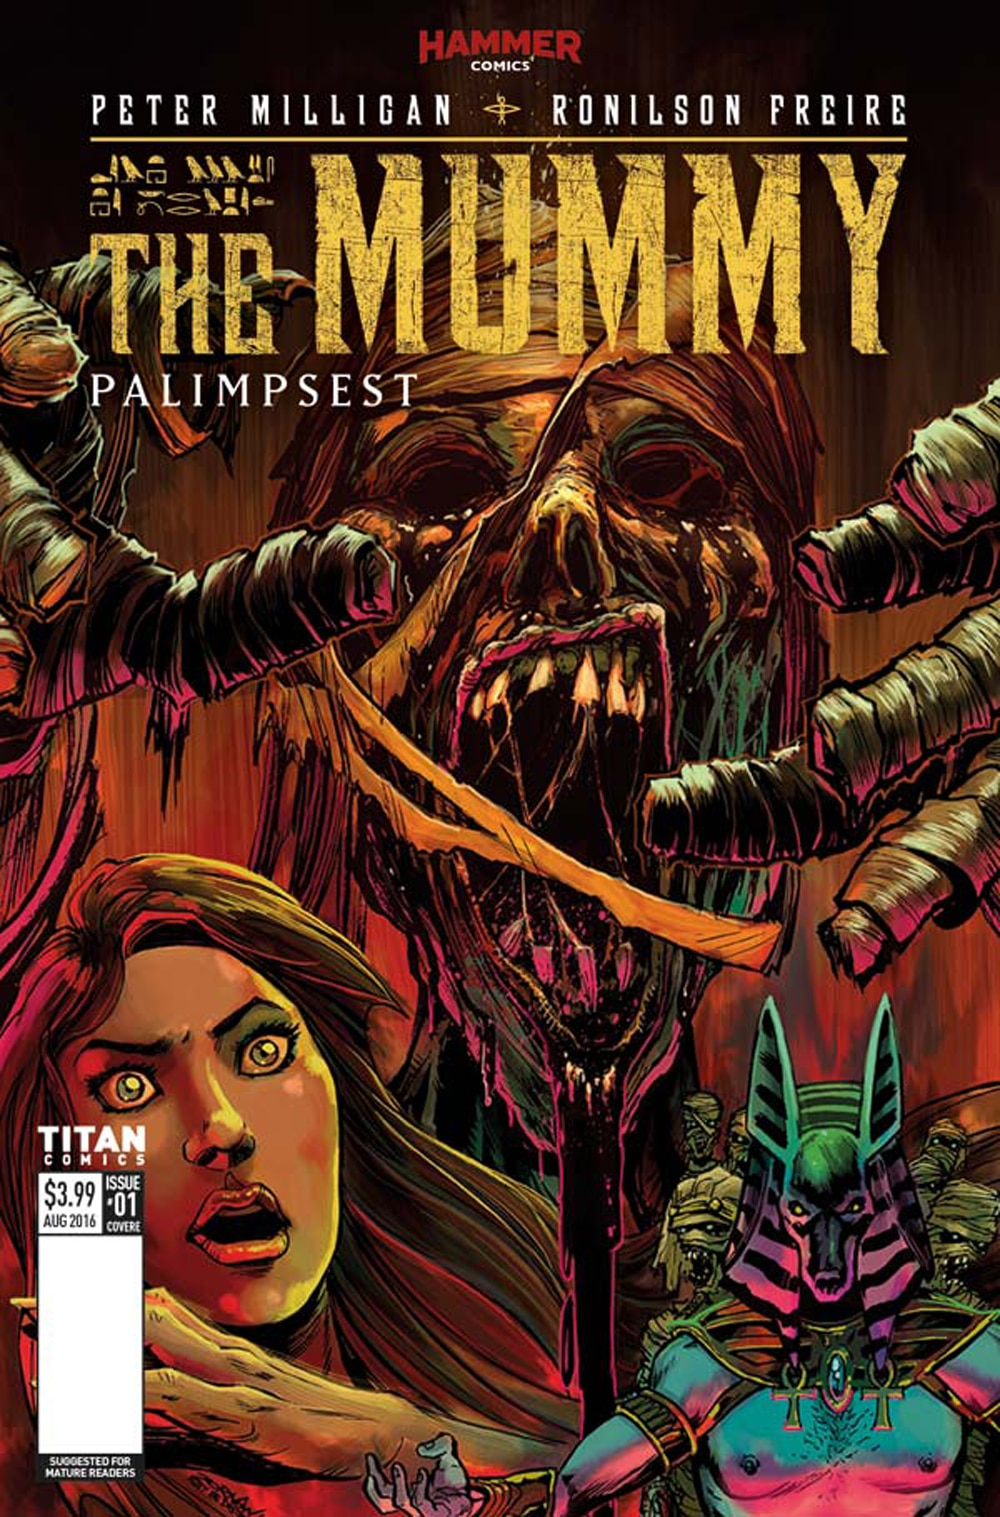 Mummy 1 Cover E - Exclusive Reveal: The Mummy Issue #1 Interior Pages and Variant Cover